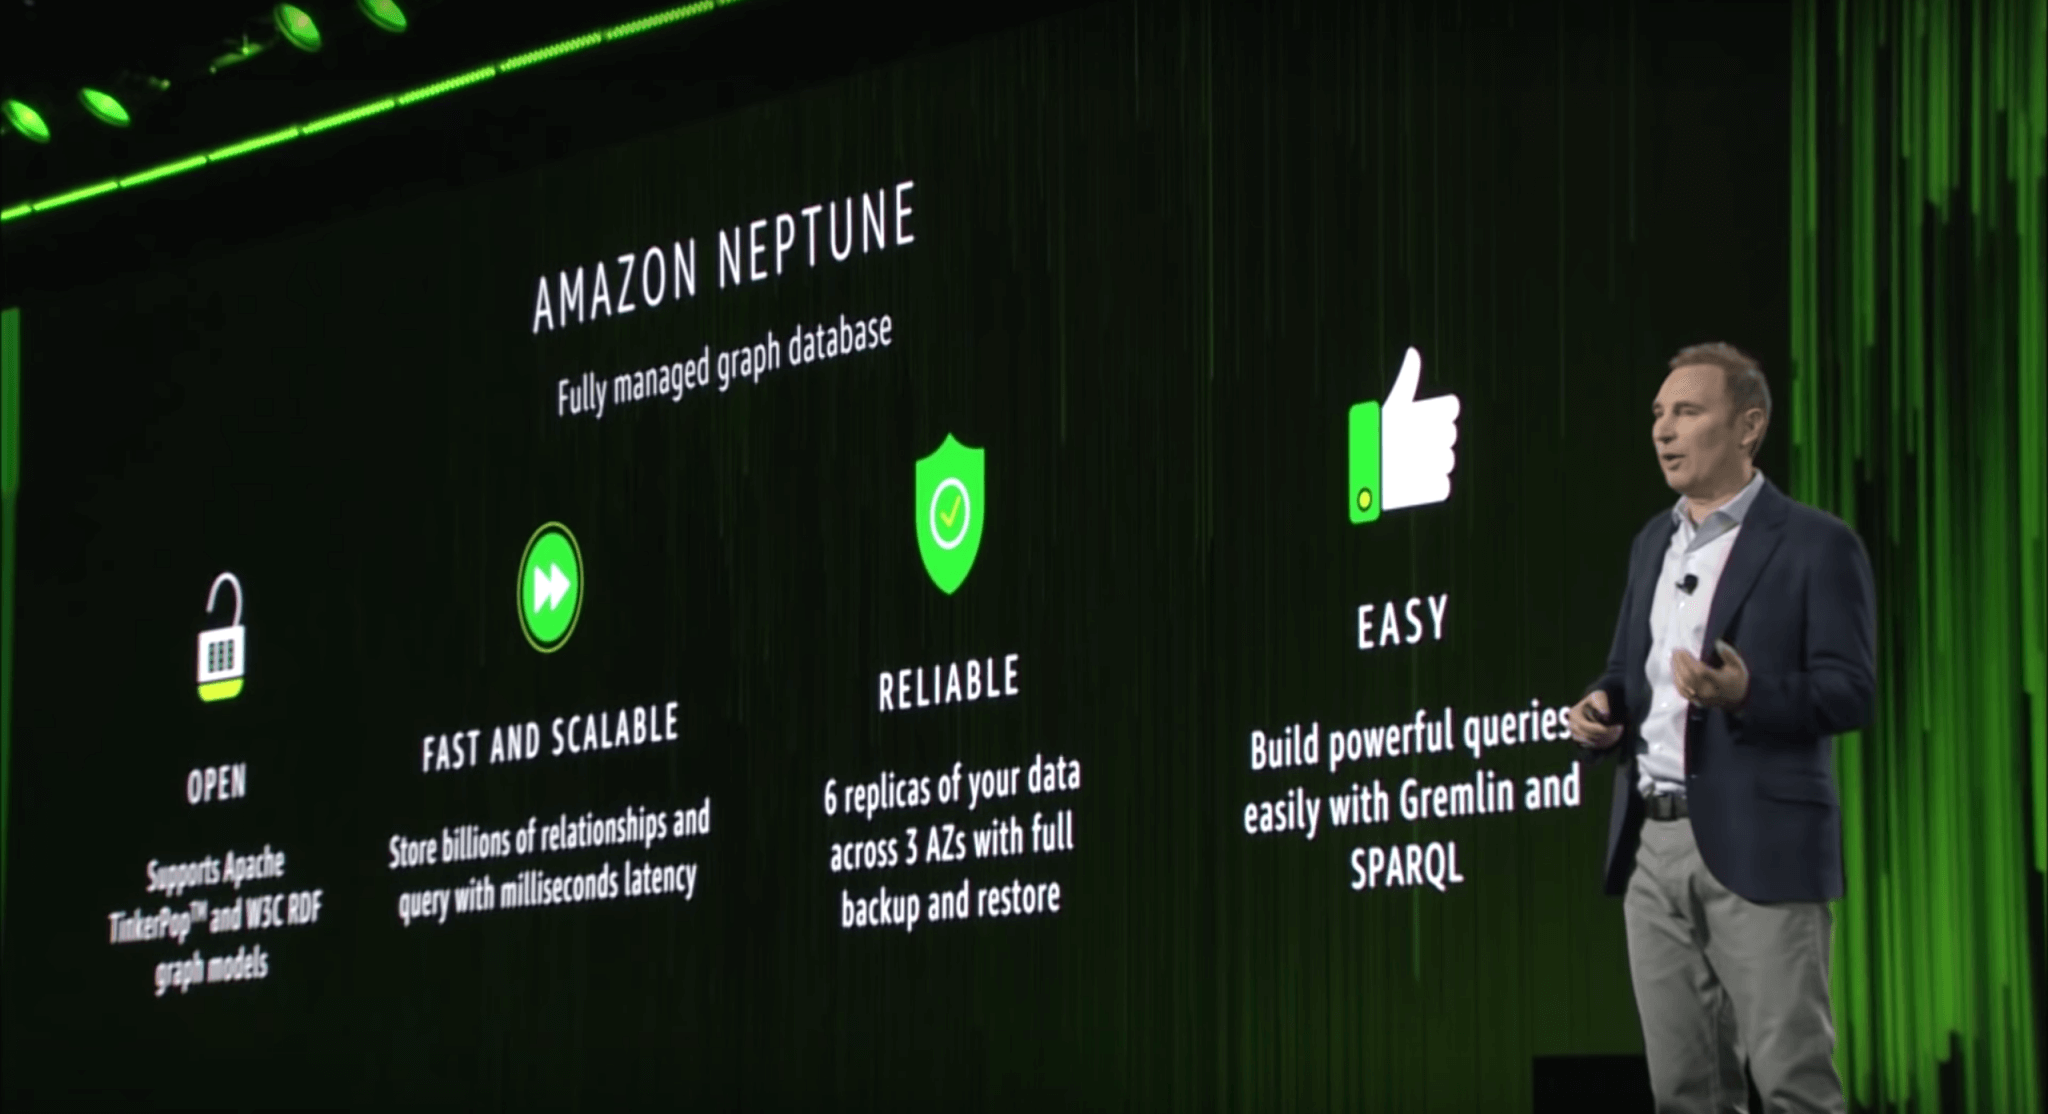 AWS Announcements at re:Invent 2017 - Amazon Neptune